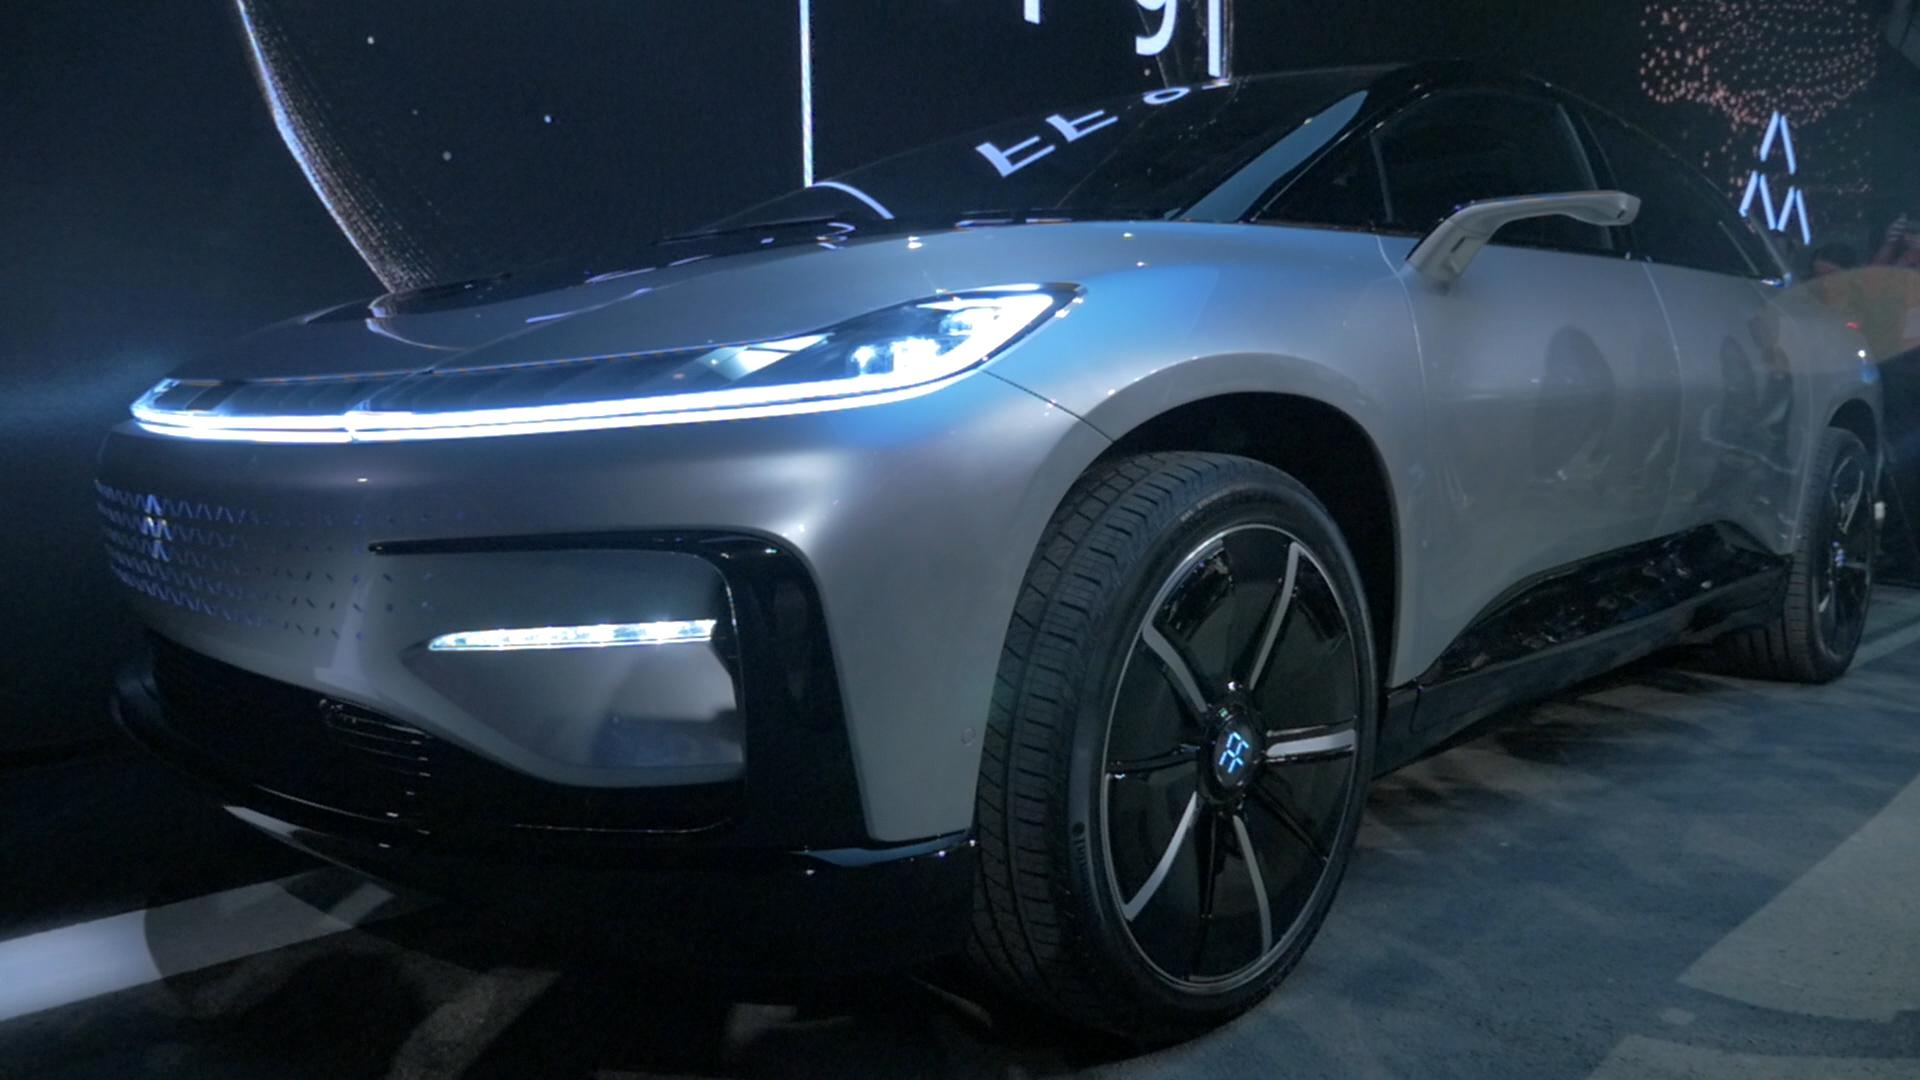 NIO debuts EVE principle at SXSW and Faraday Future cries foul